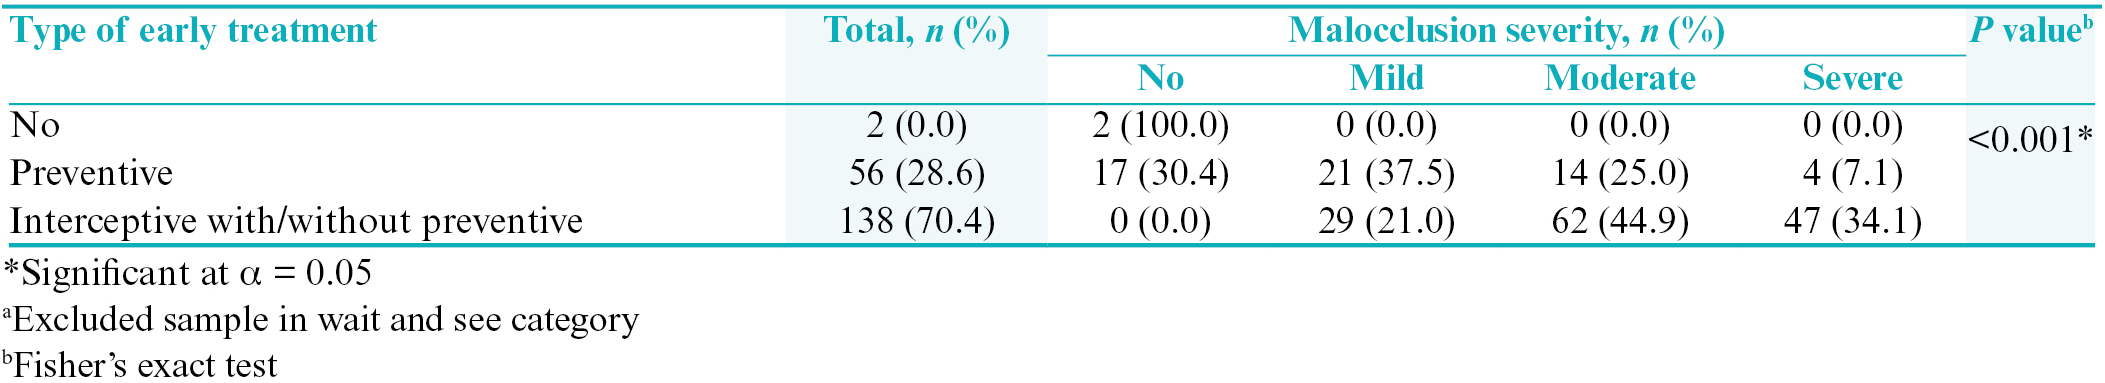 Table 5: Relationships between malocclusion severity and type of early treatment (<i>n</i> = 196<sup>a</sup>)